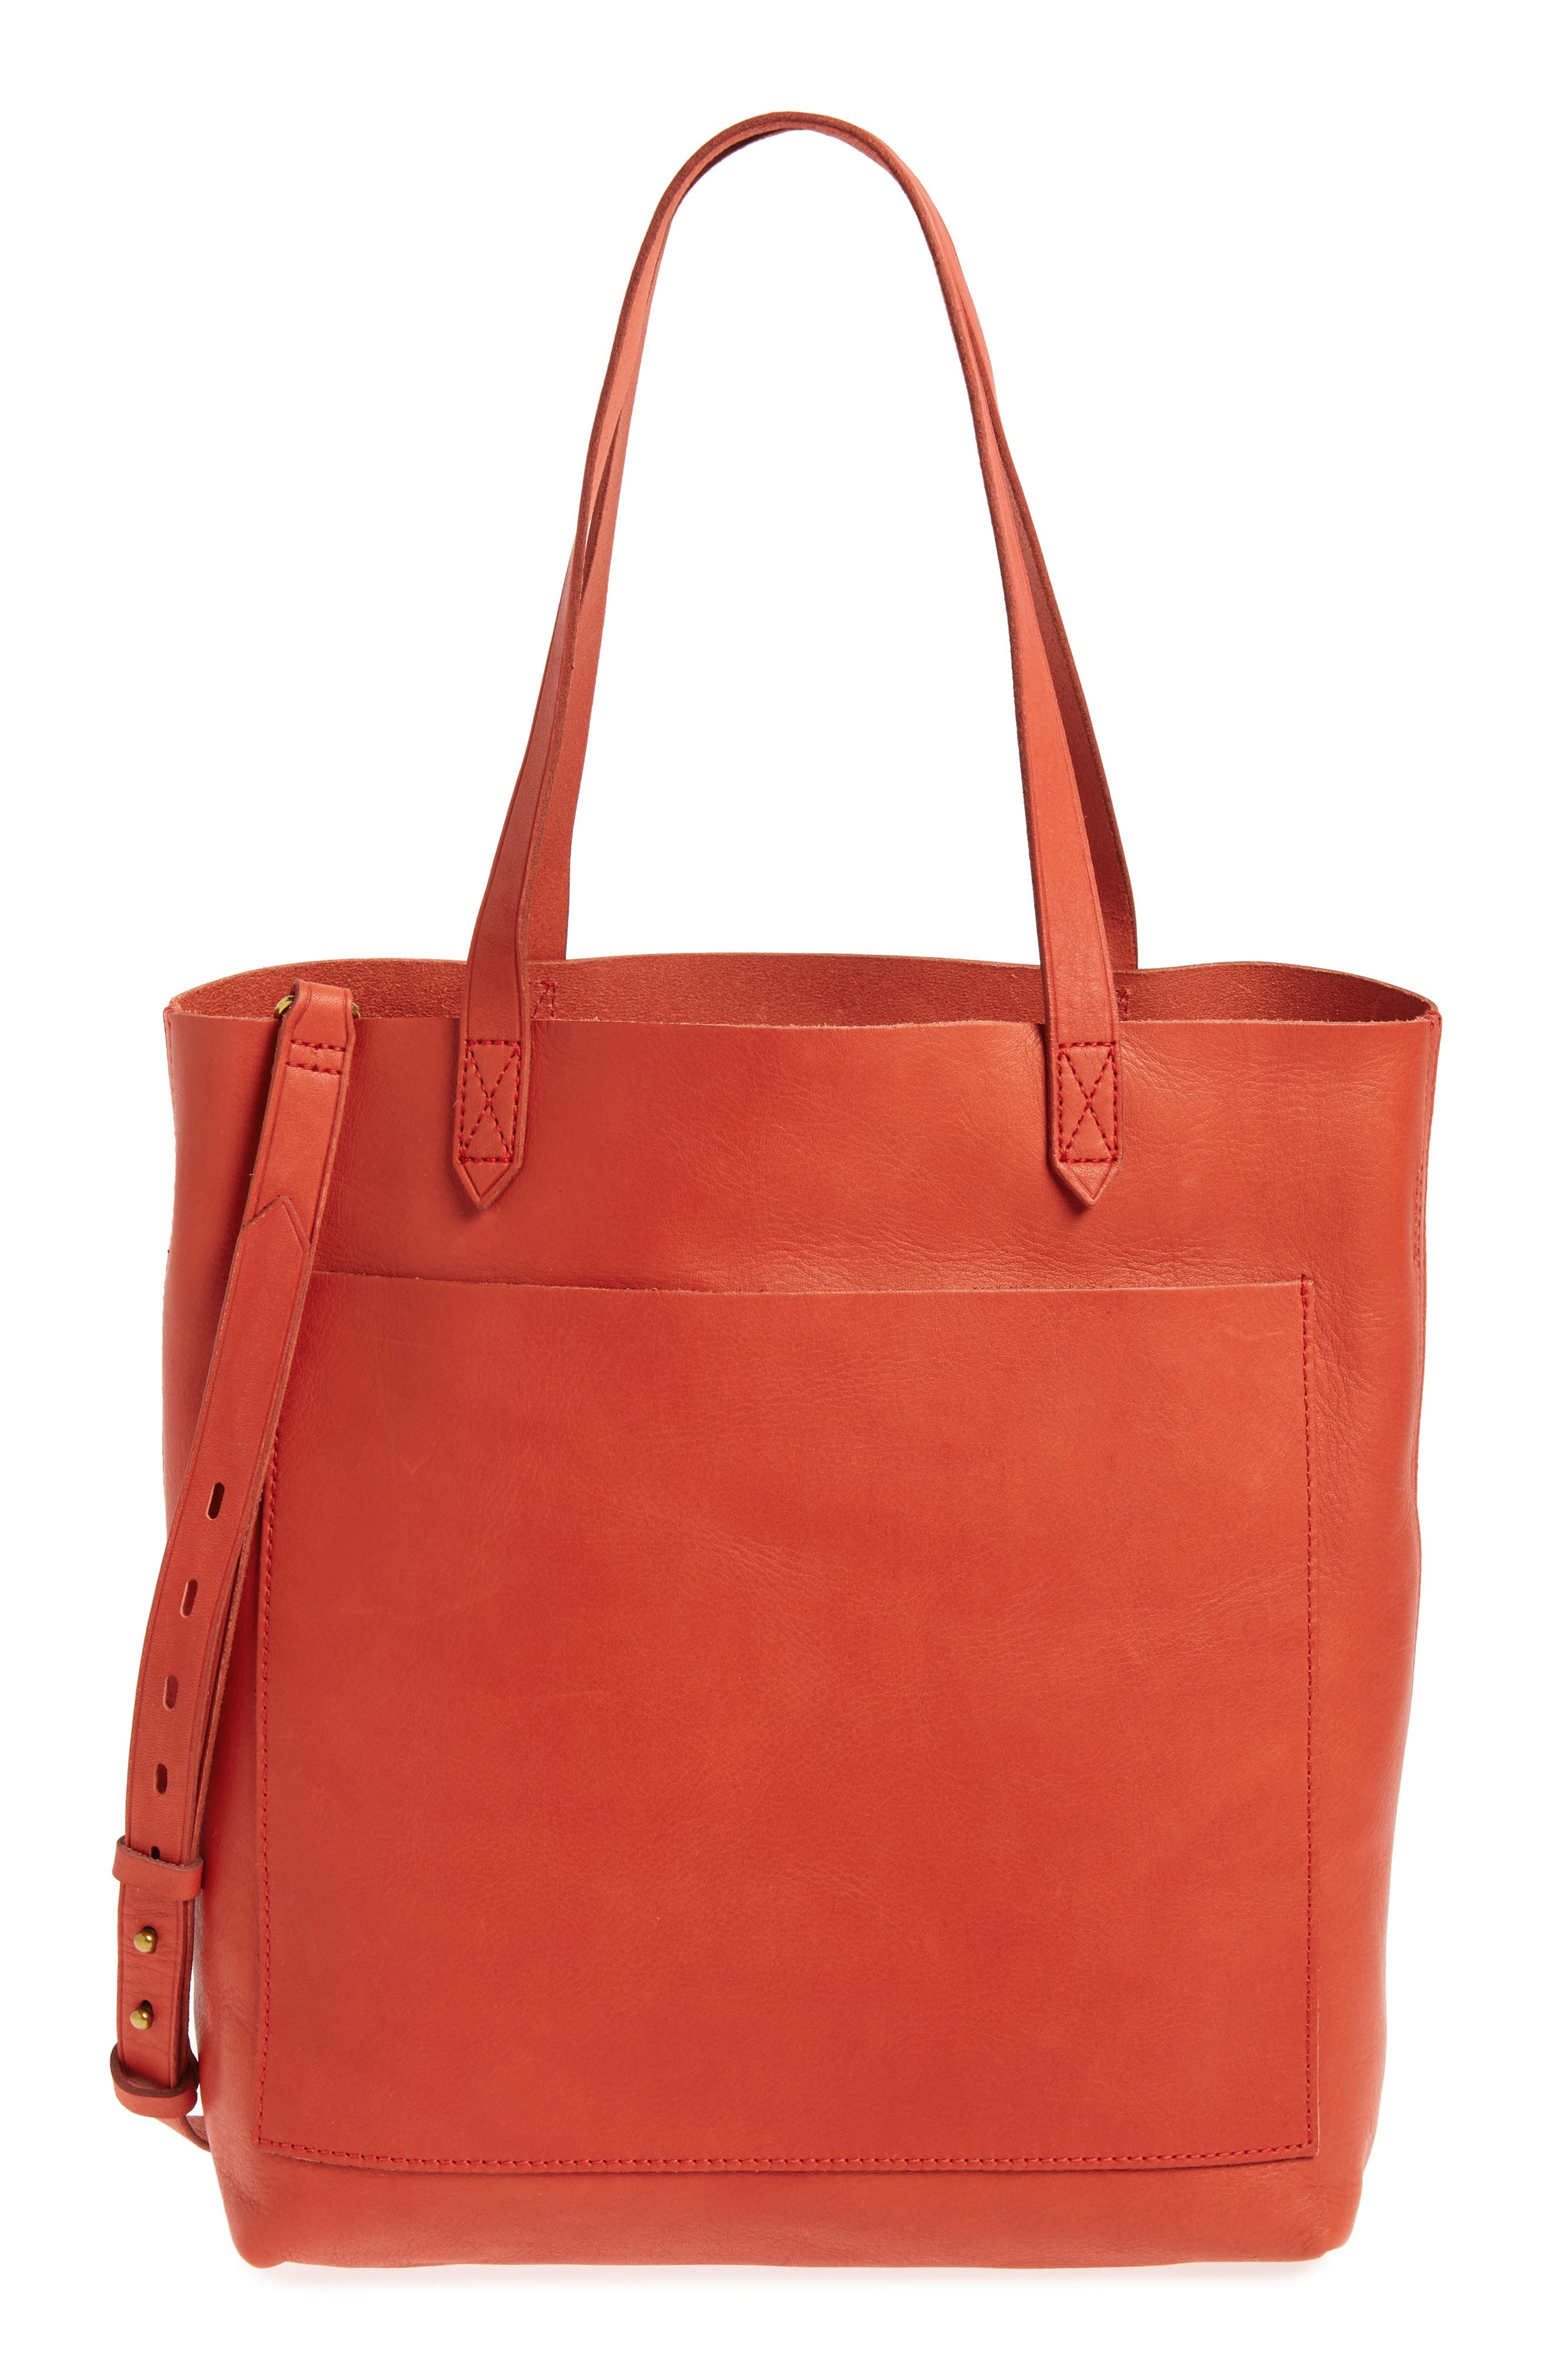 Medium Leather Transport Tote,                             Main thumbnail 7, color,